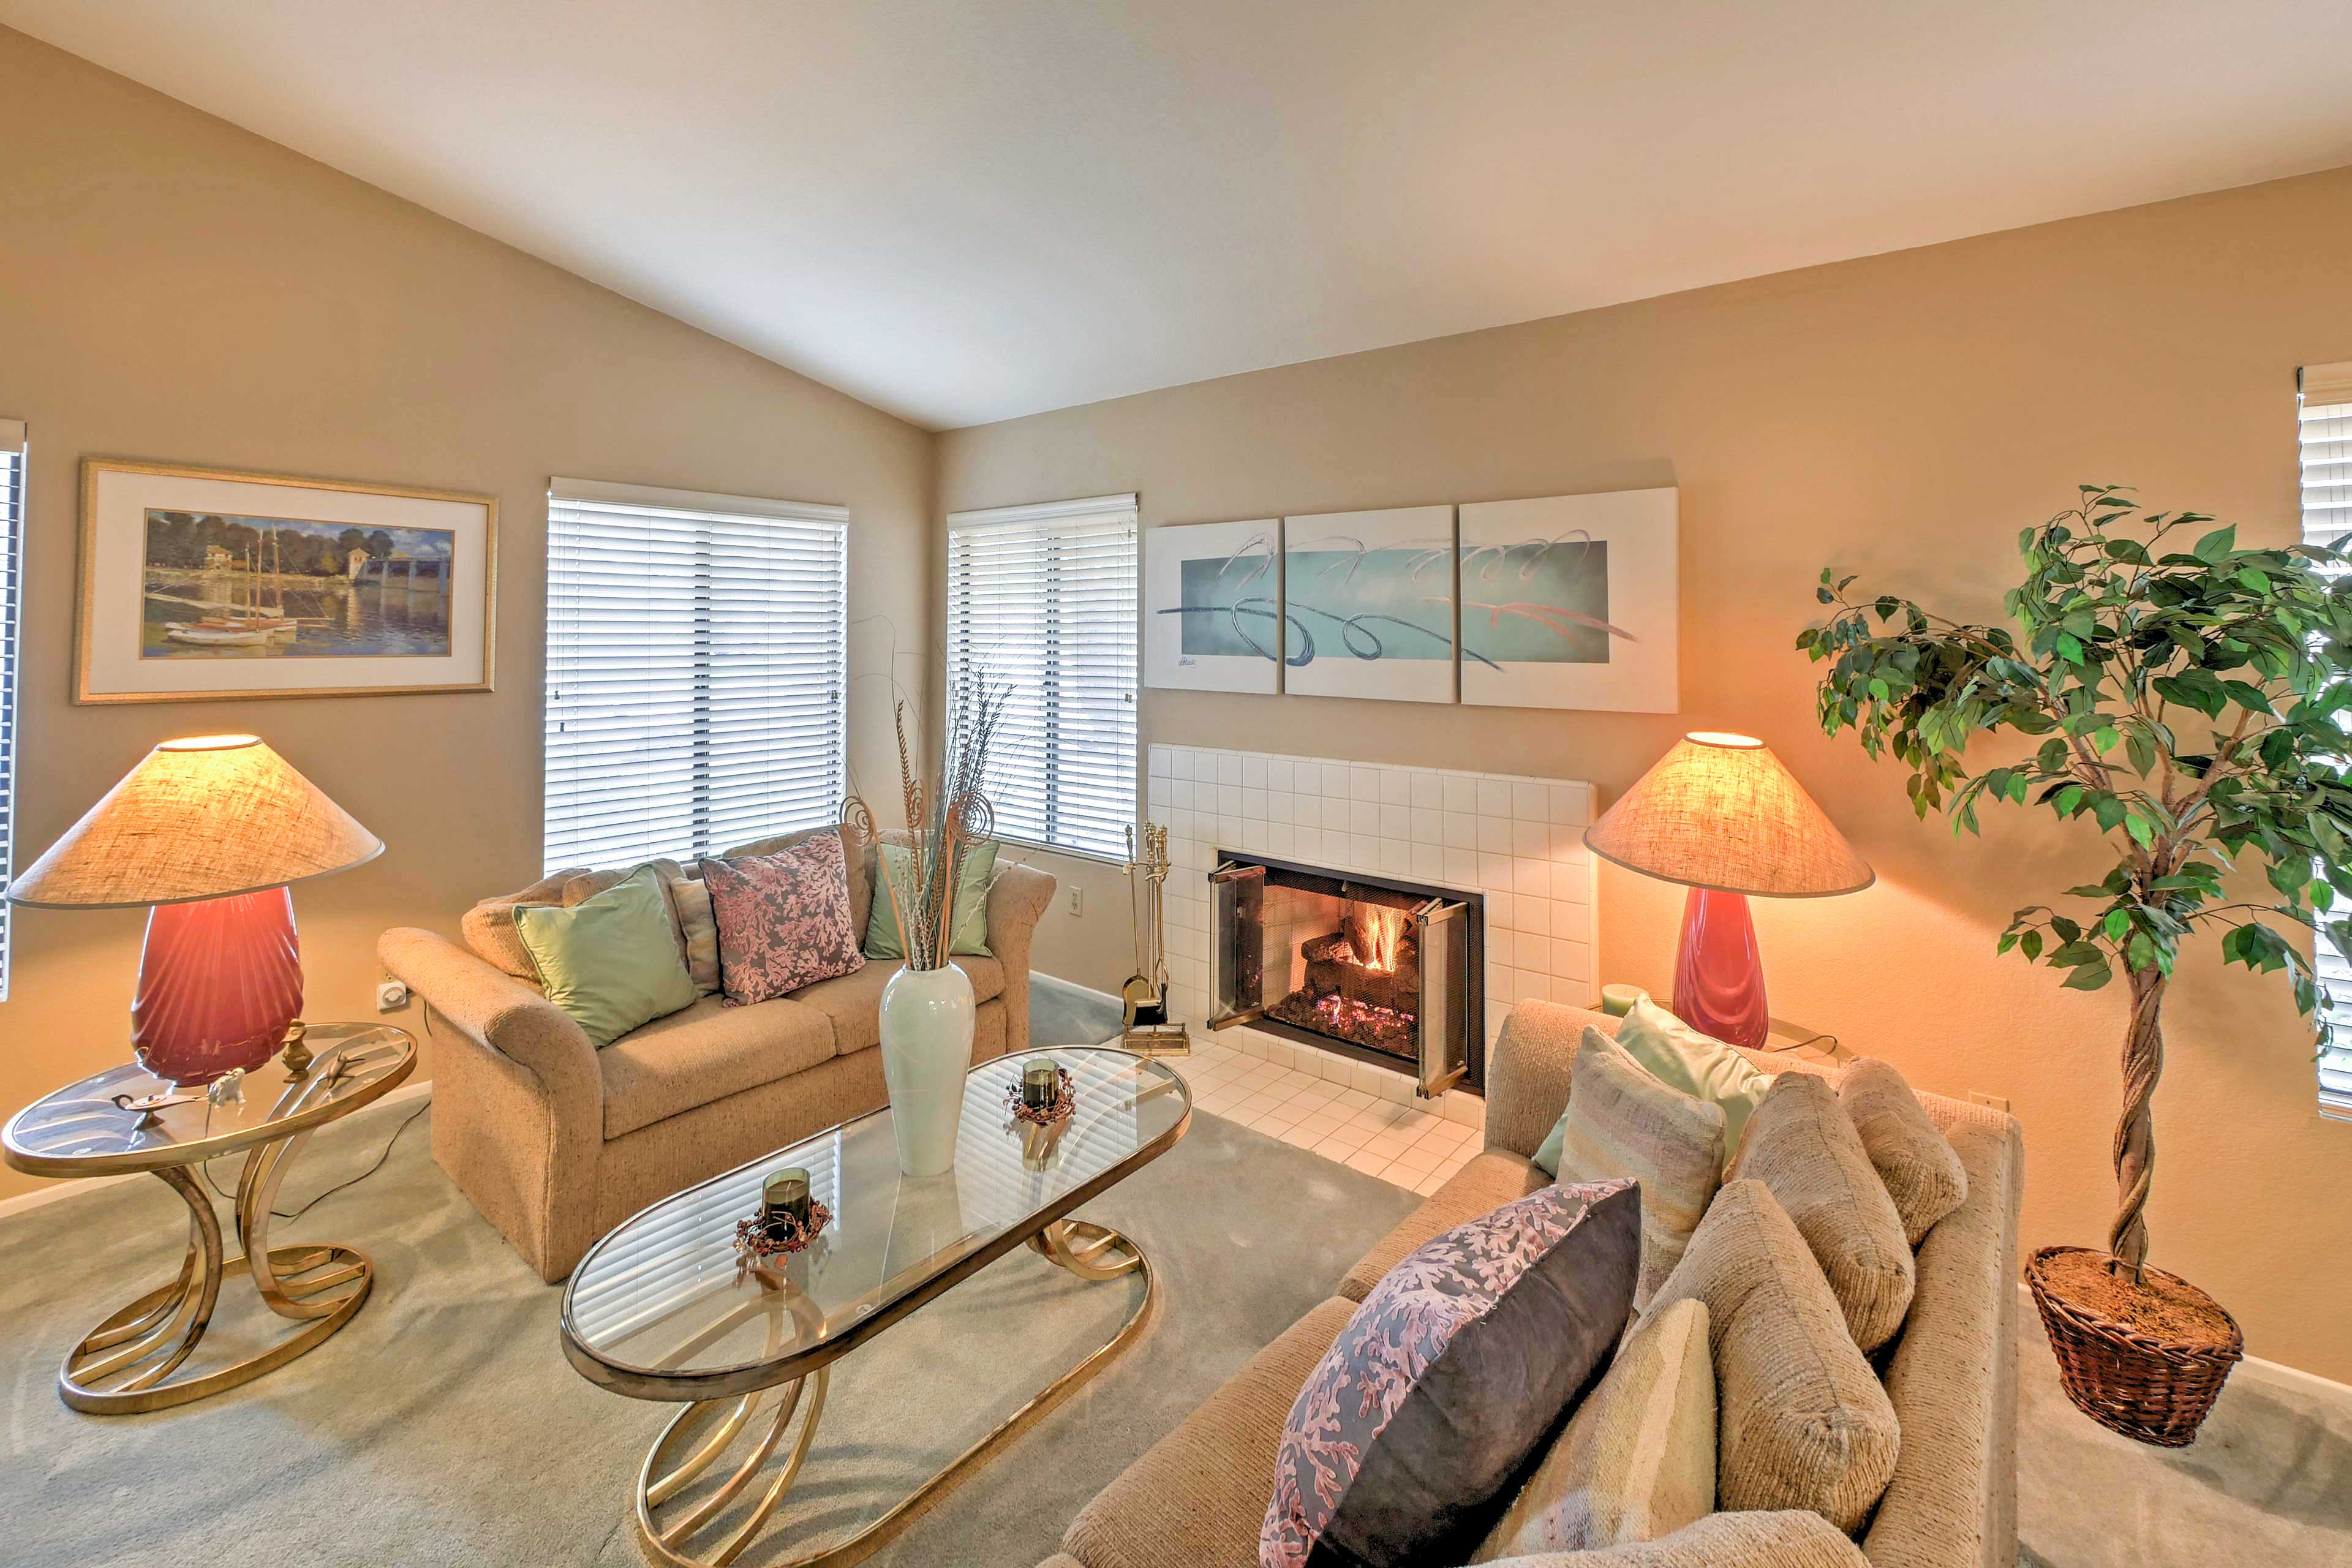 Cozy up next the gas fireplace in the spacious living room area.